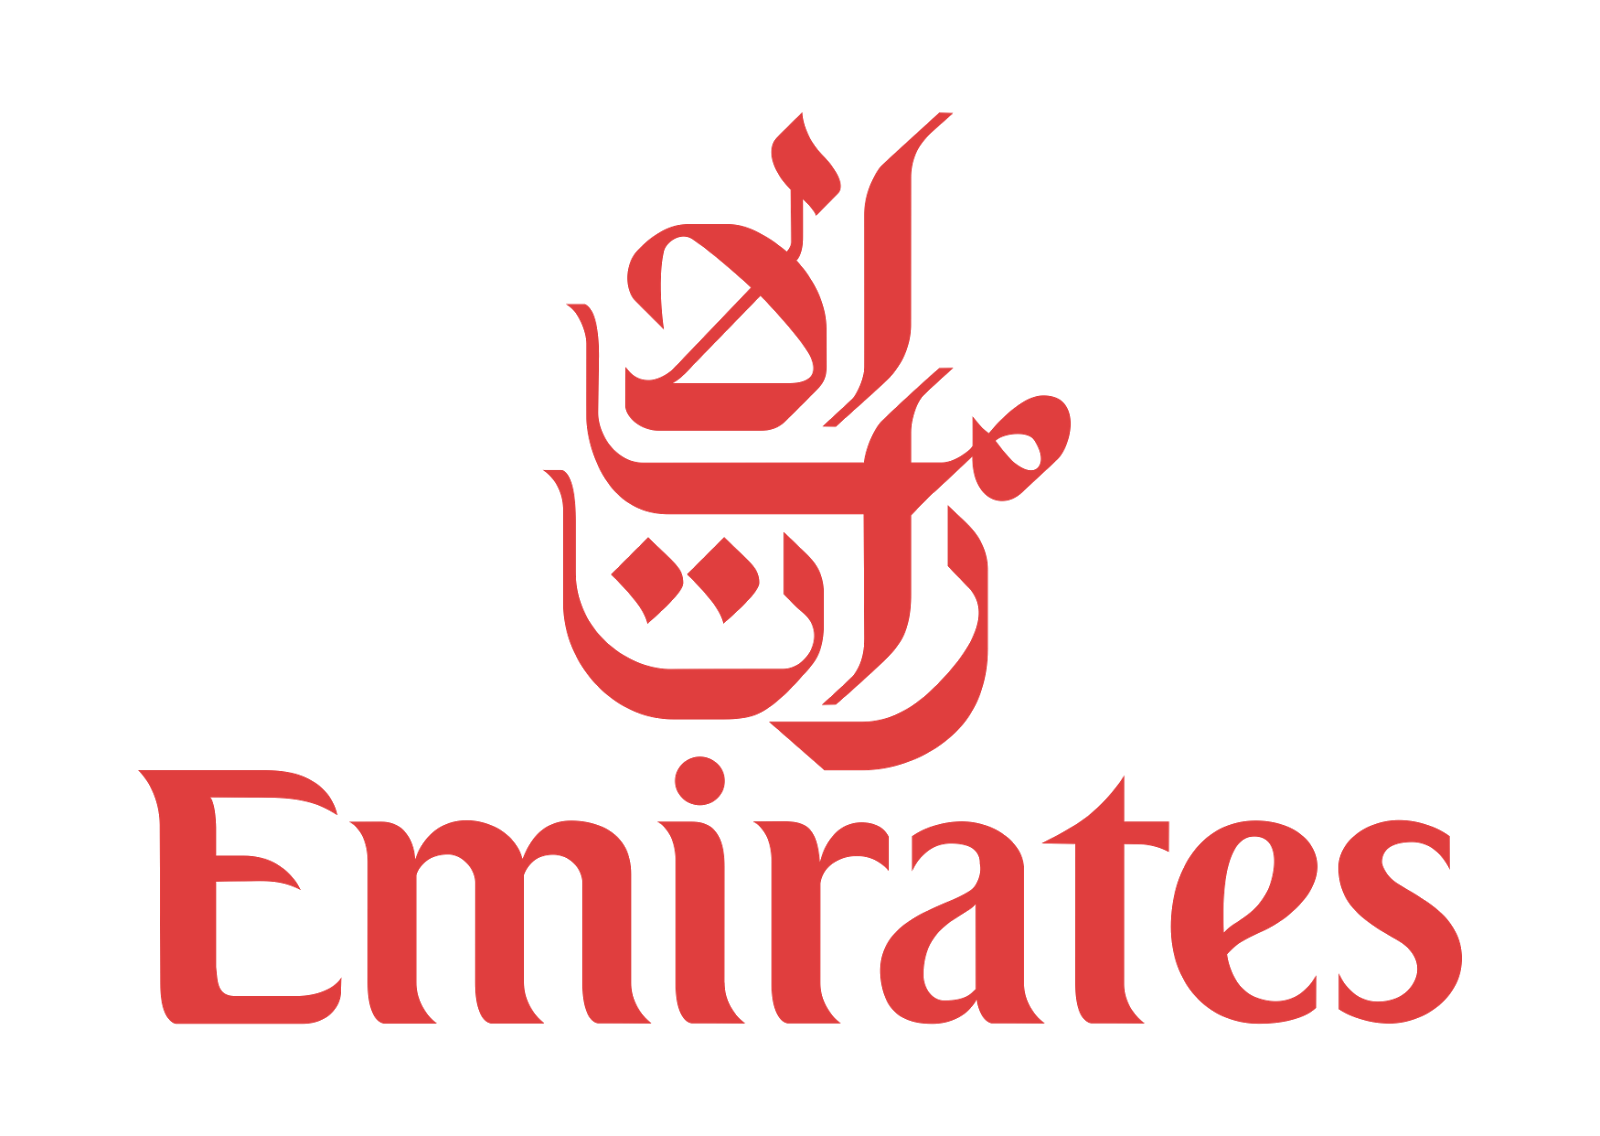 Emirates diecast model planes